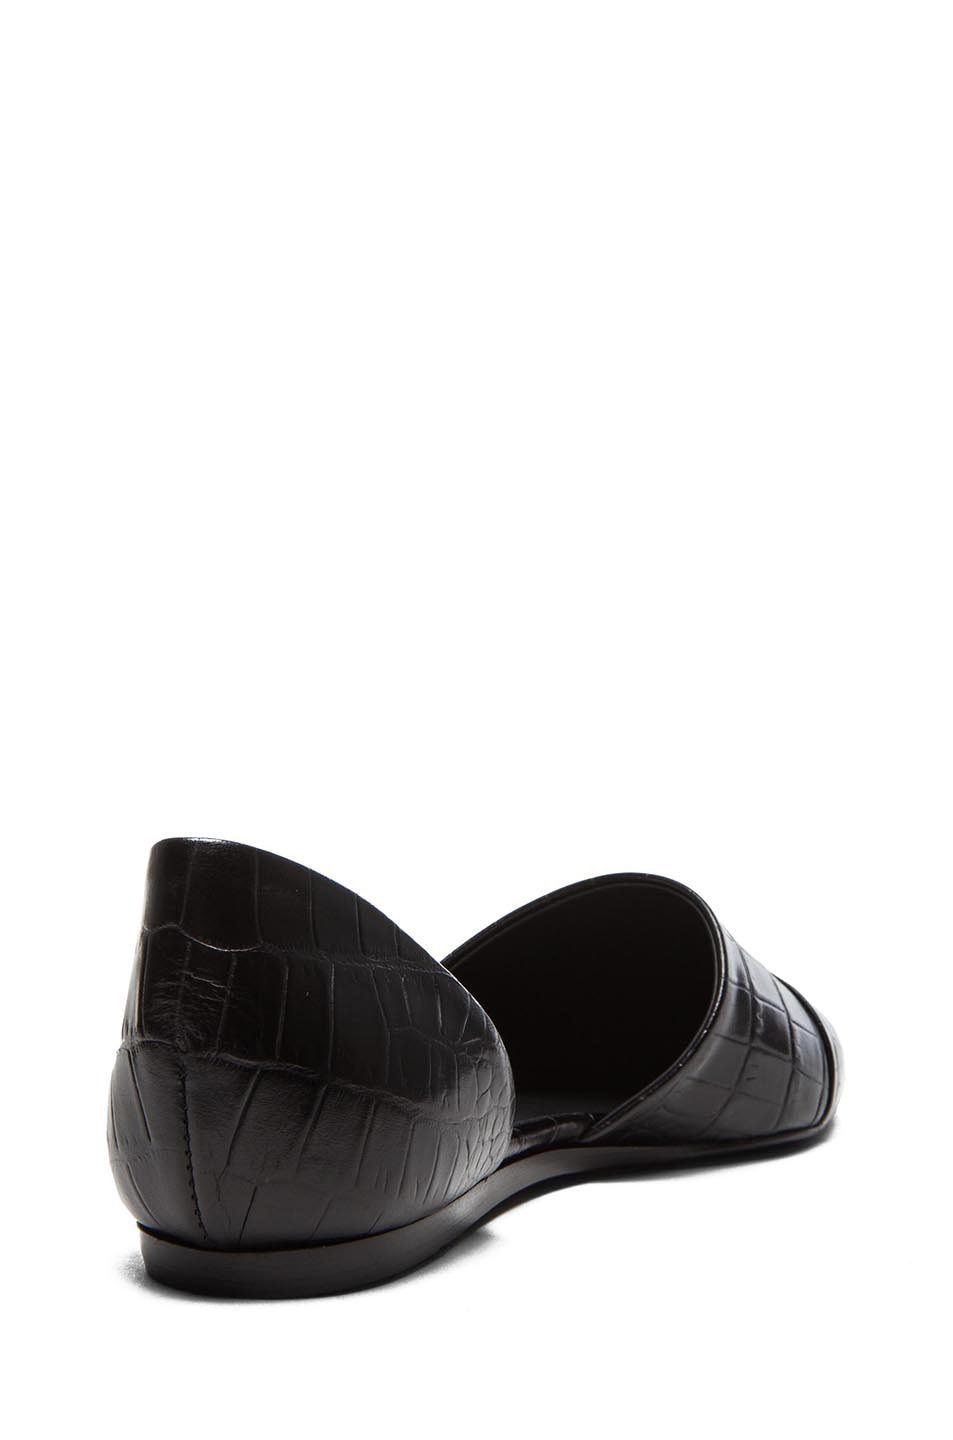 Image 3 of Jenni Kayne D'Orsay Croc Embossed Leather Flats in Black